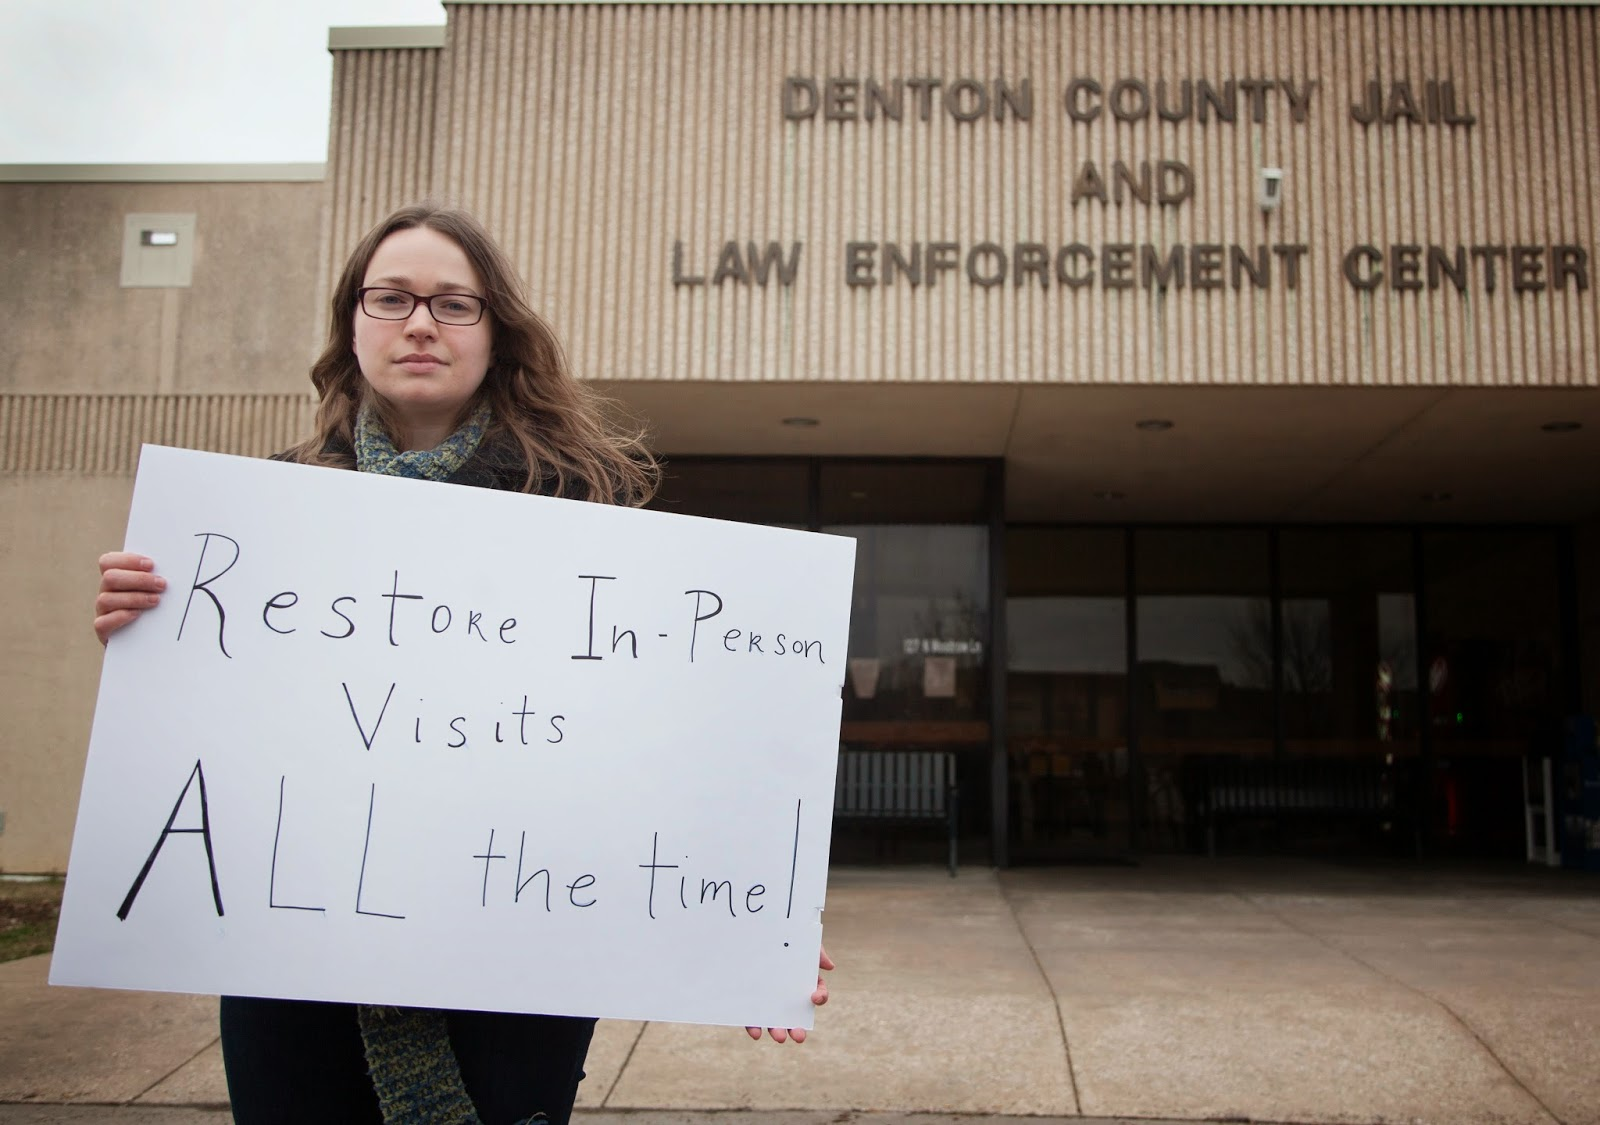 """Jennifer Long posed with a sign that reads, """"Restore in-person visits all the time!"""" in front of the Denton County Jail where protesters gathered Feb. 26, 2015, to protest the jail's video visitation system.  Photo by Kristen Watson for the Denton Record-Chronicle."""